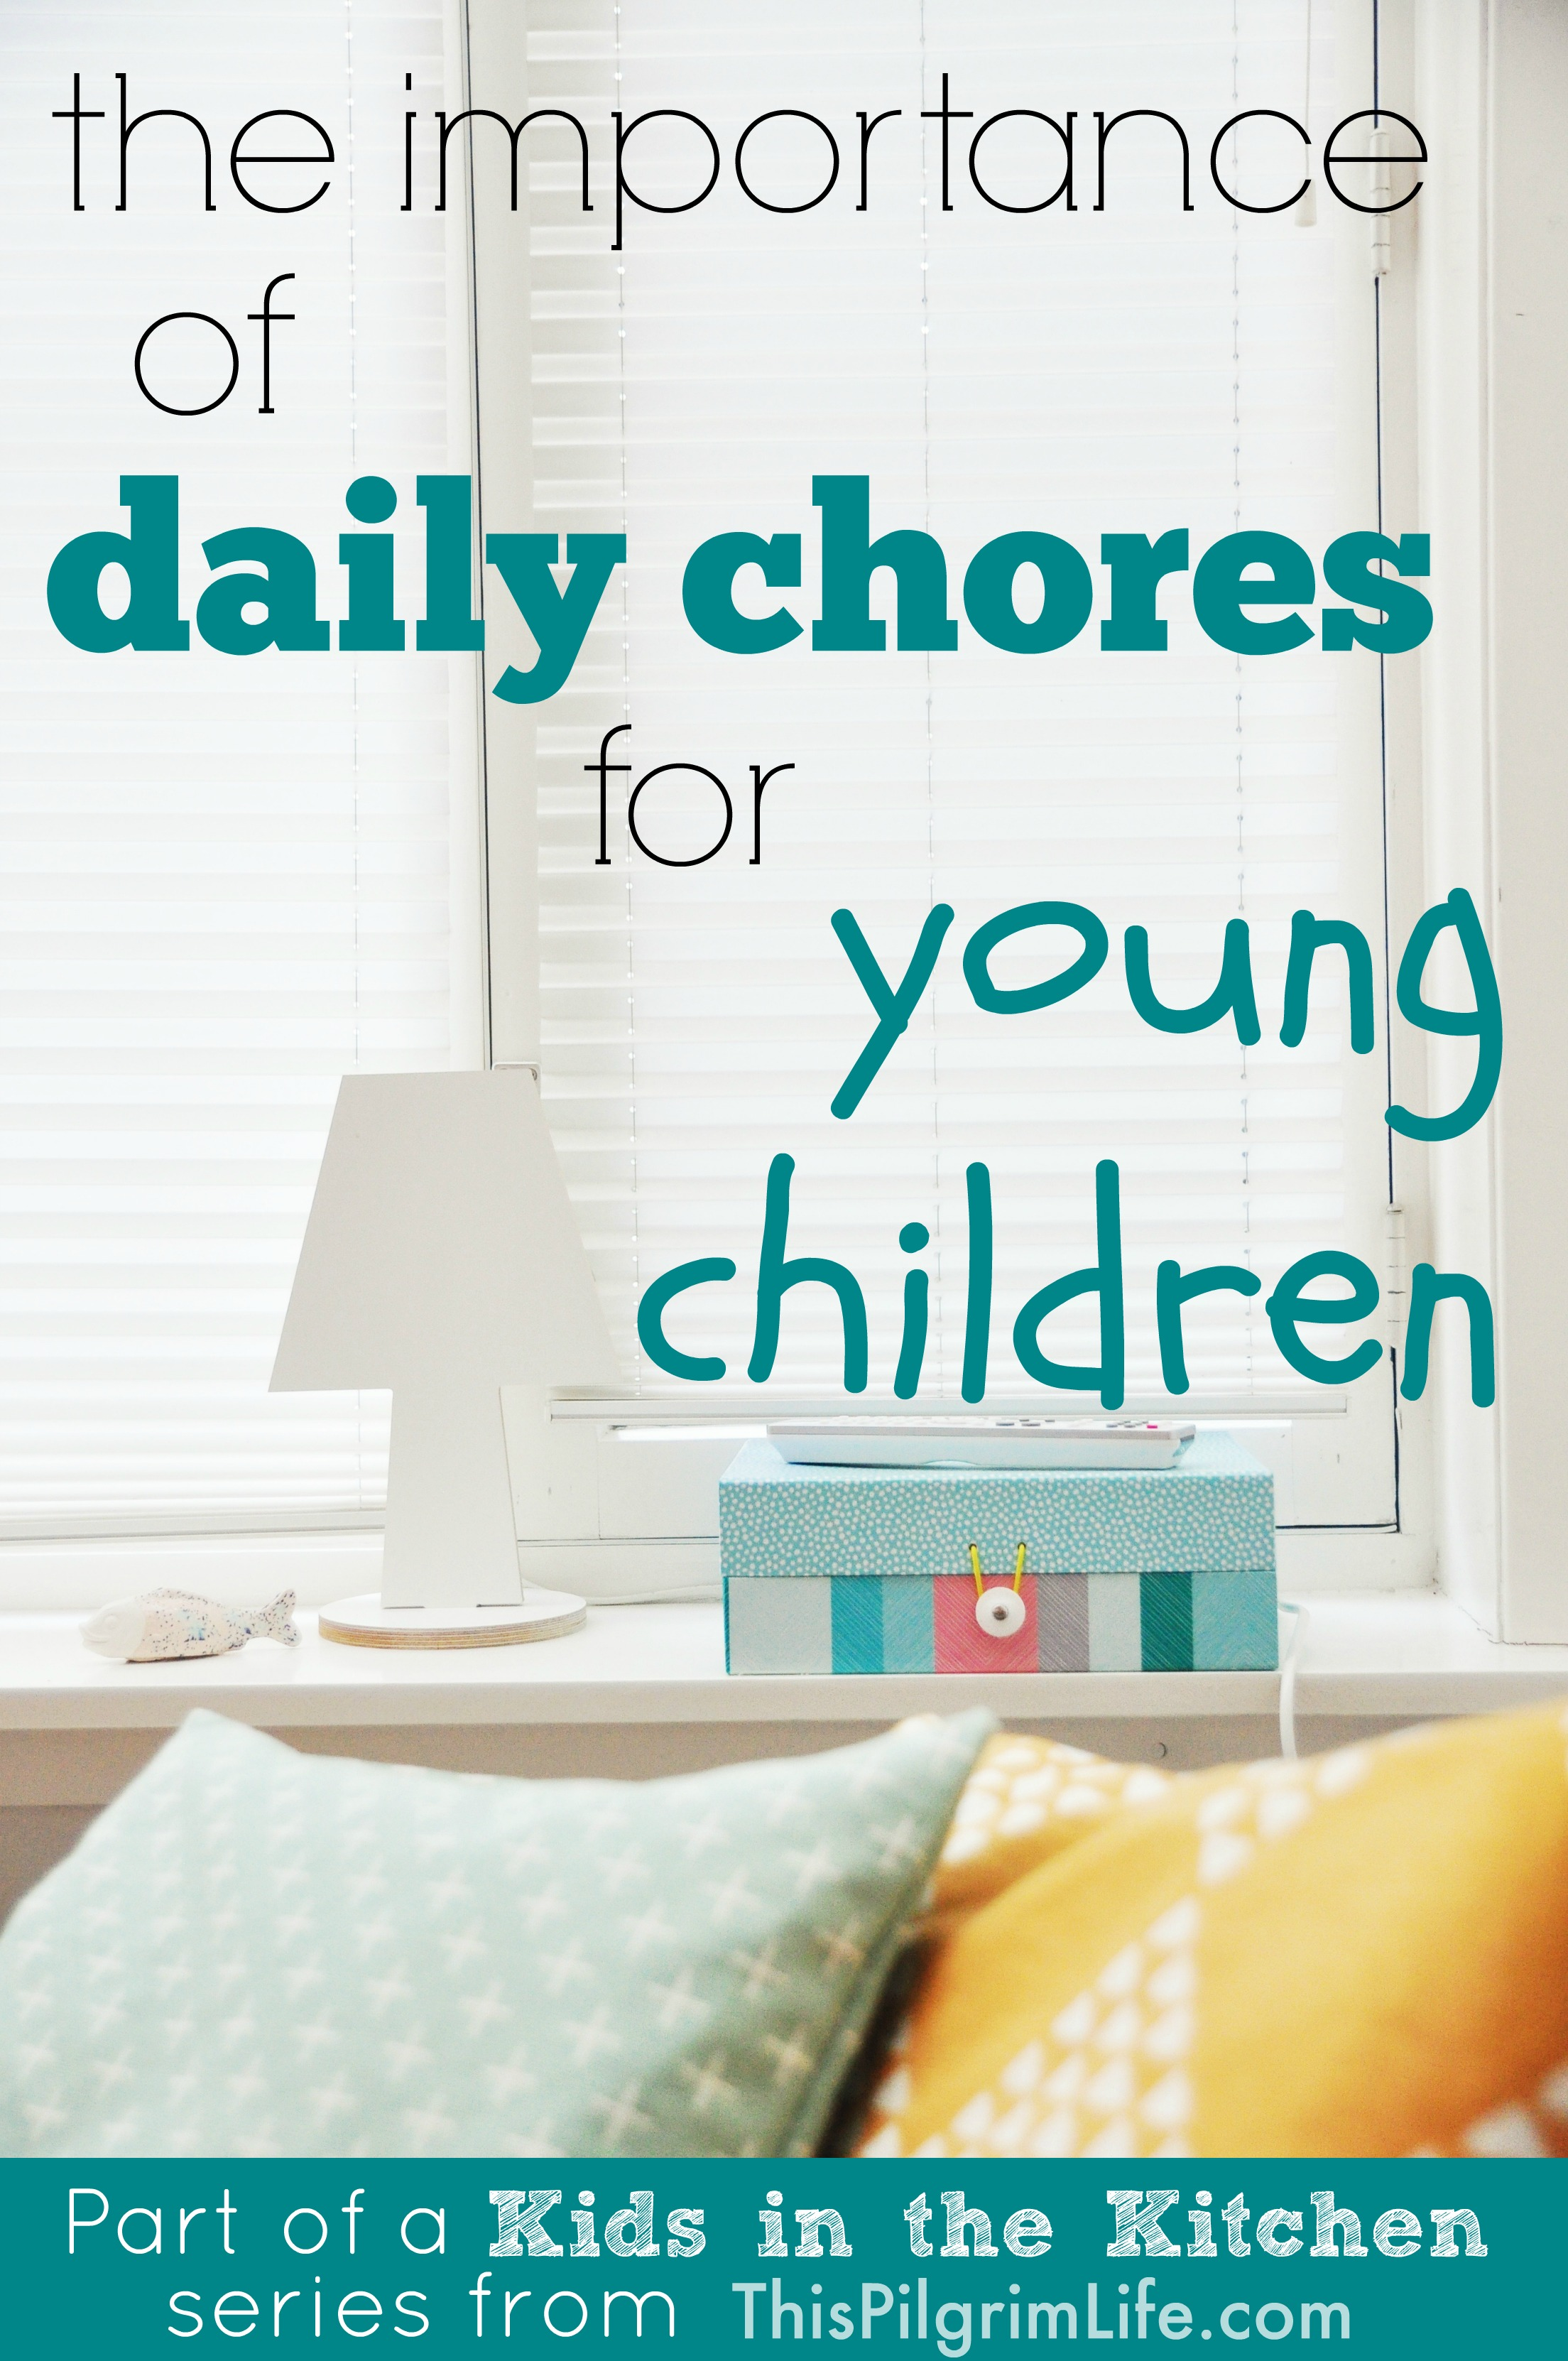 Daily chores are so important for young kids!